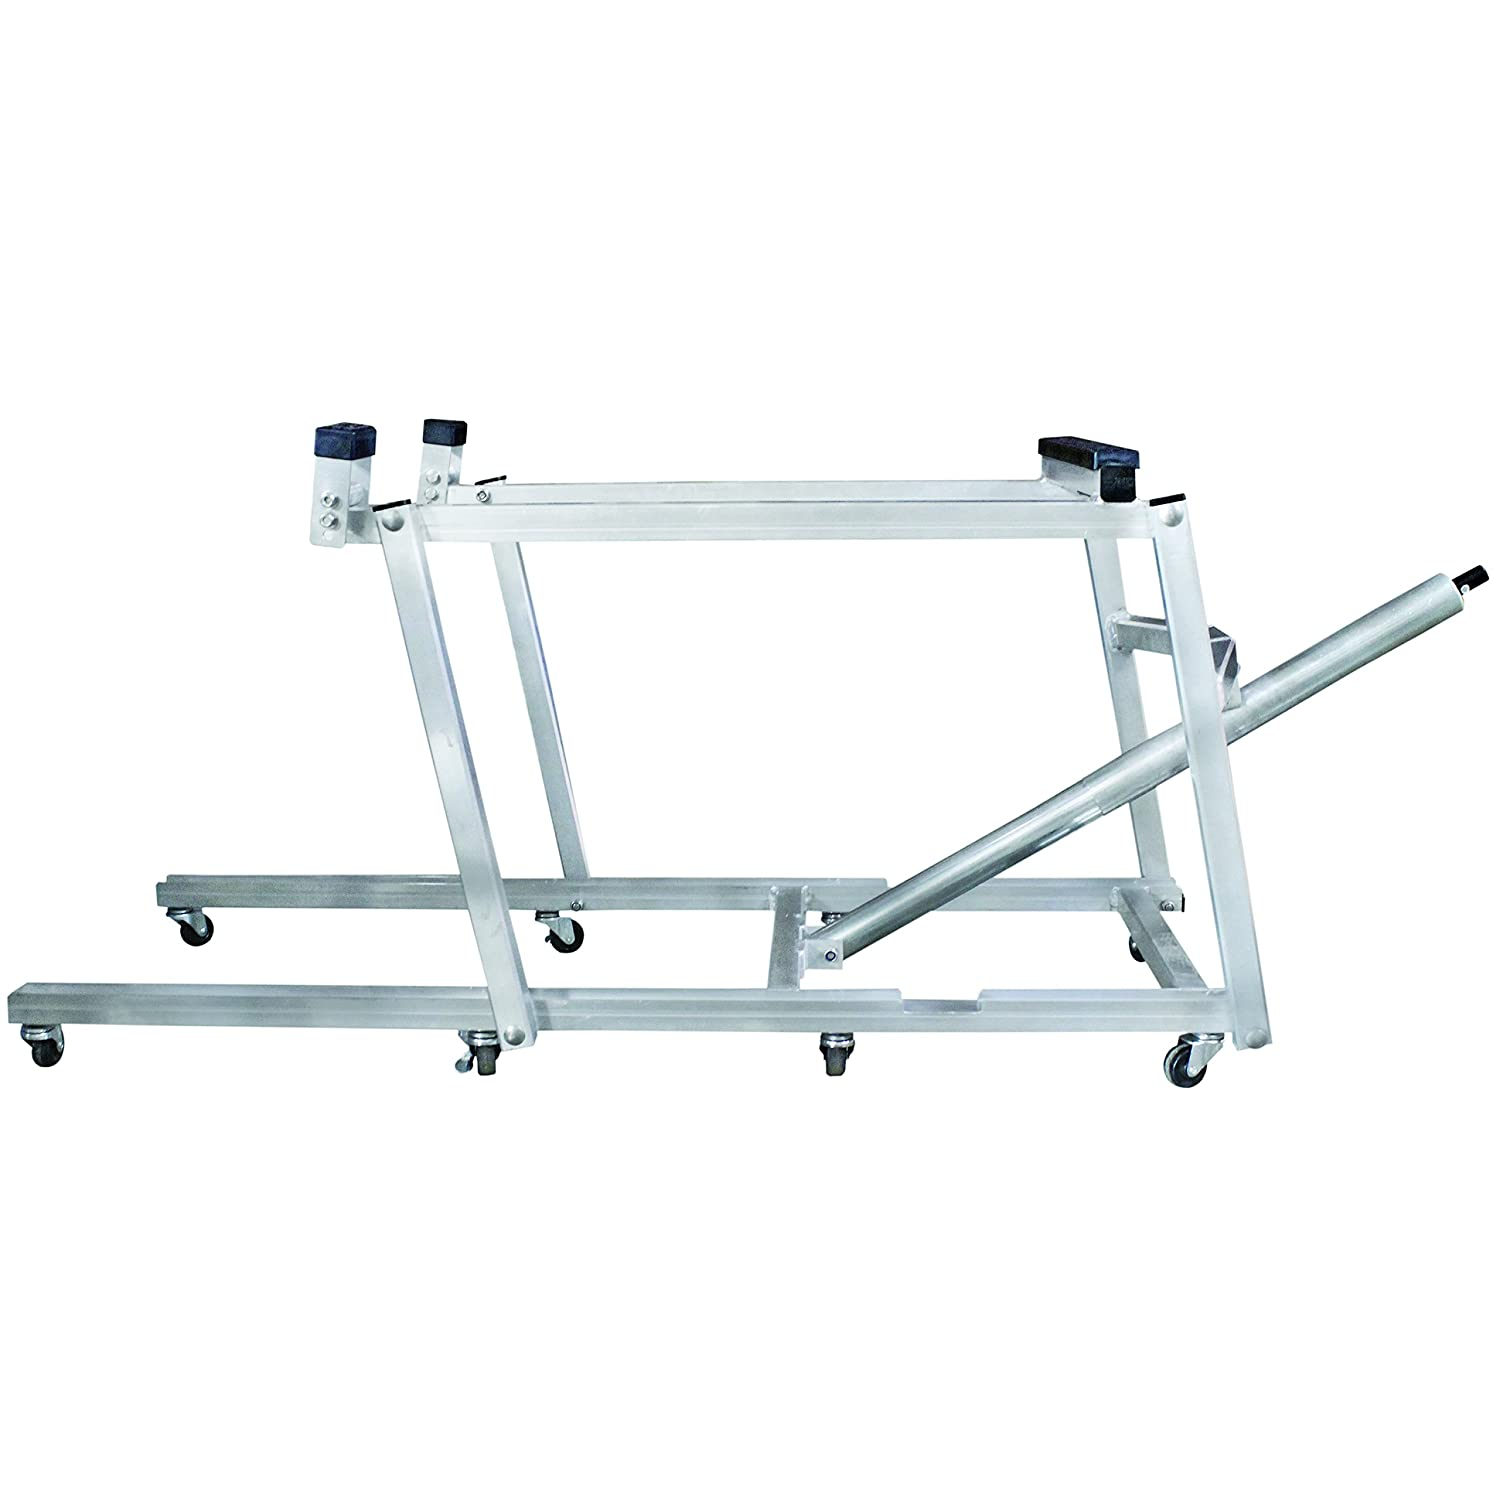 Extreme Max 5800.1184 Deluxe Aluminum Snowmobile Lift